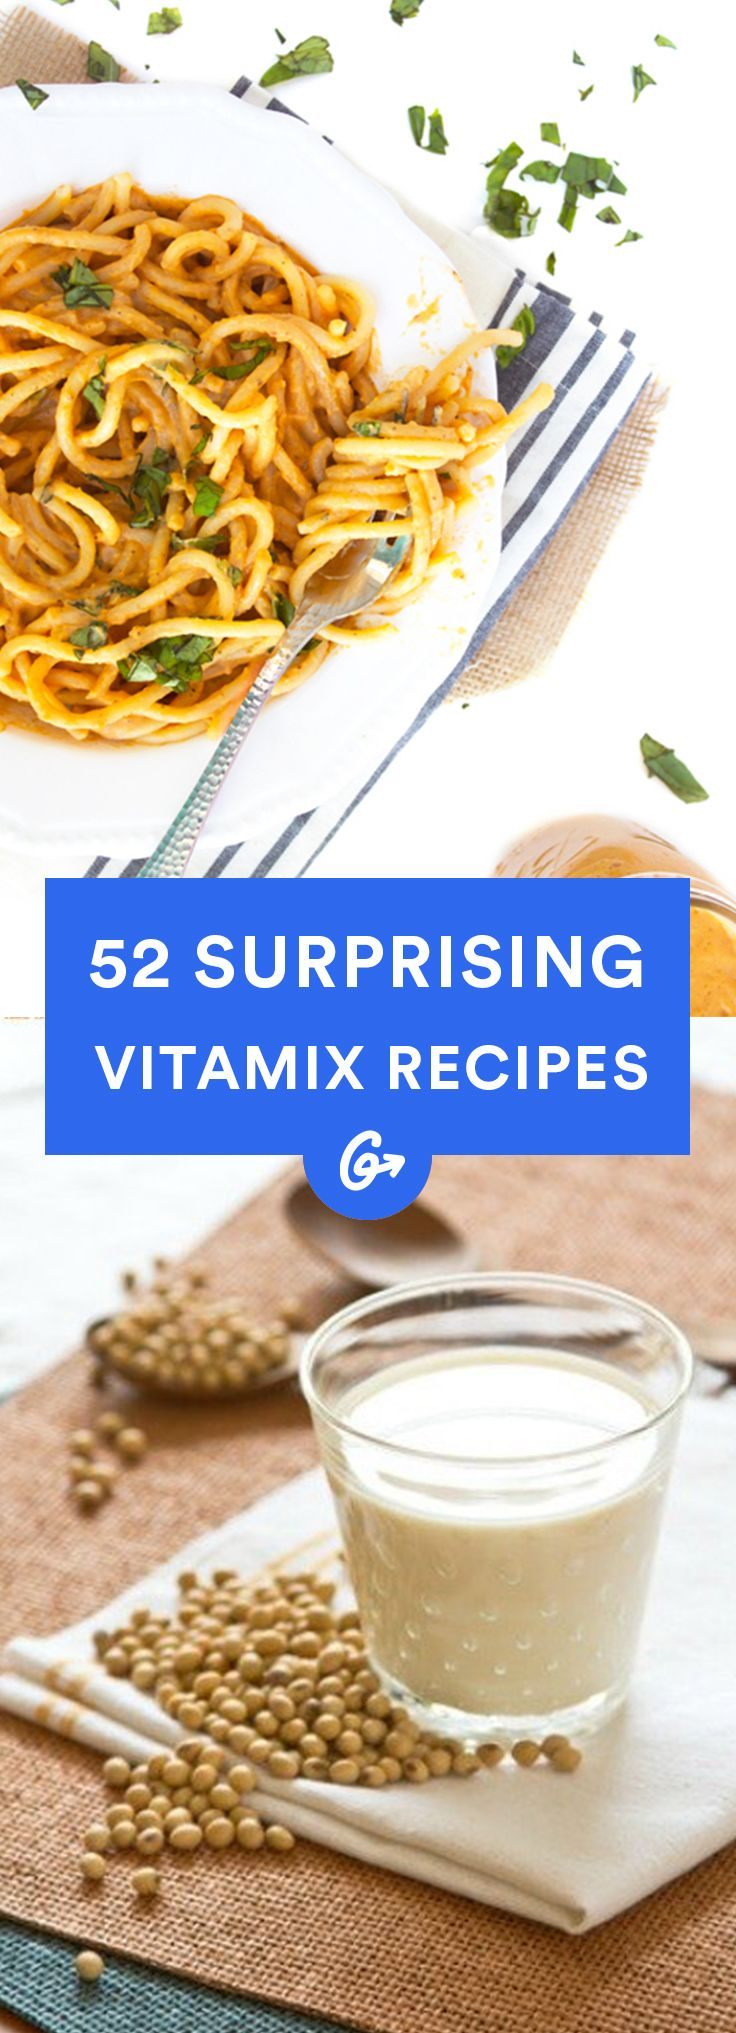 50 Surprising Things To Make In A Vitamix Healthy Recipes